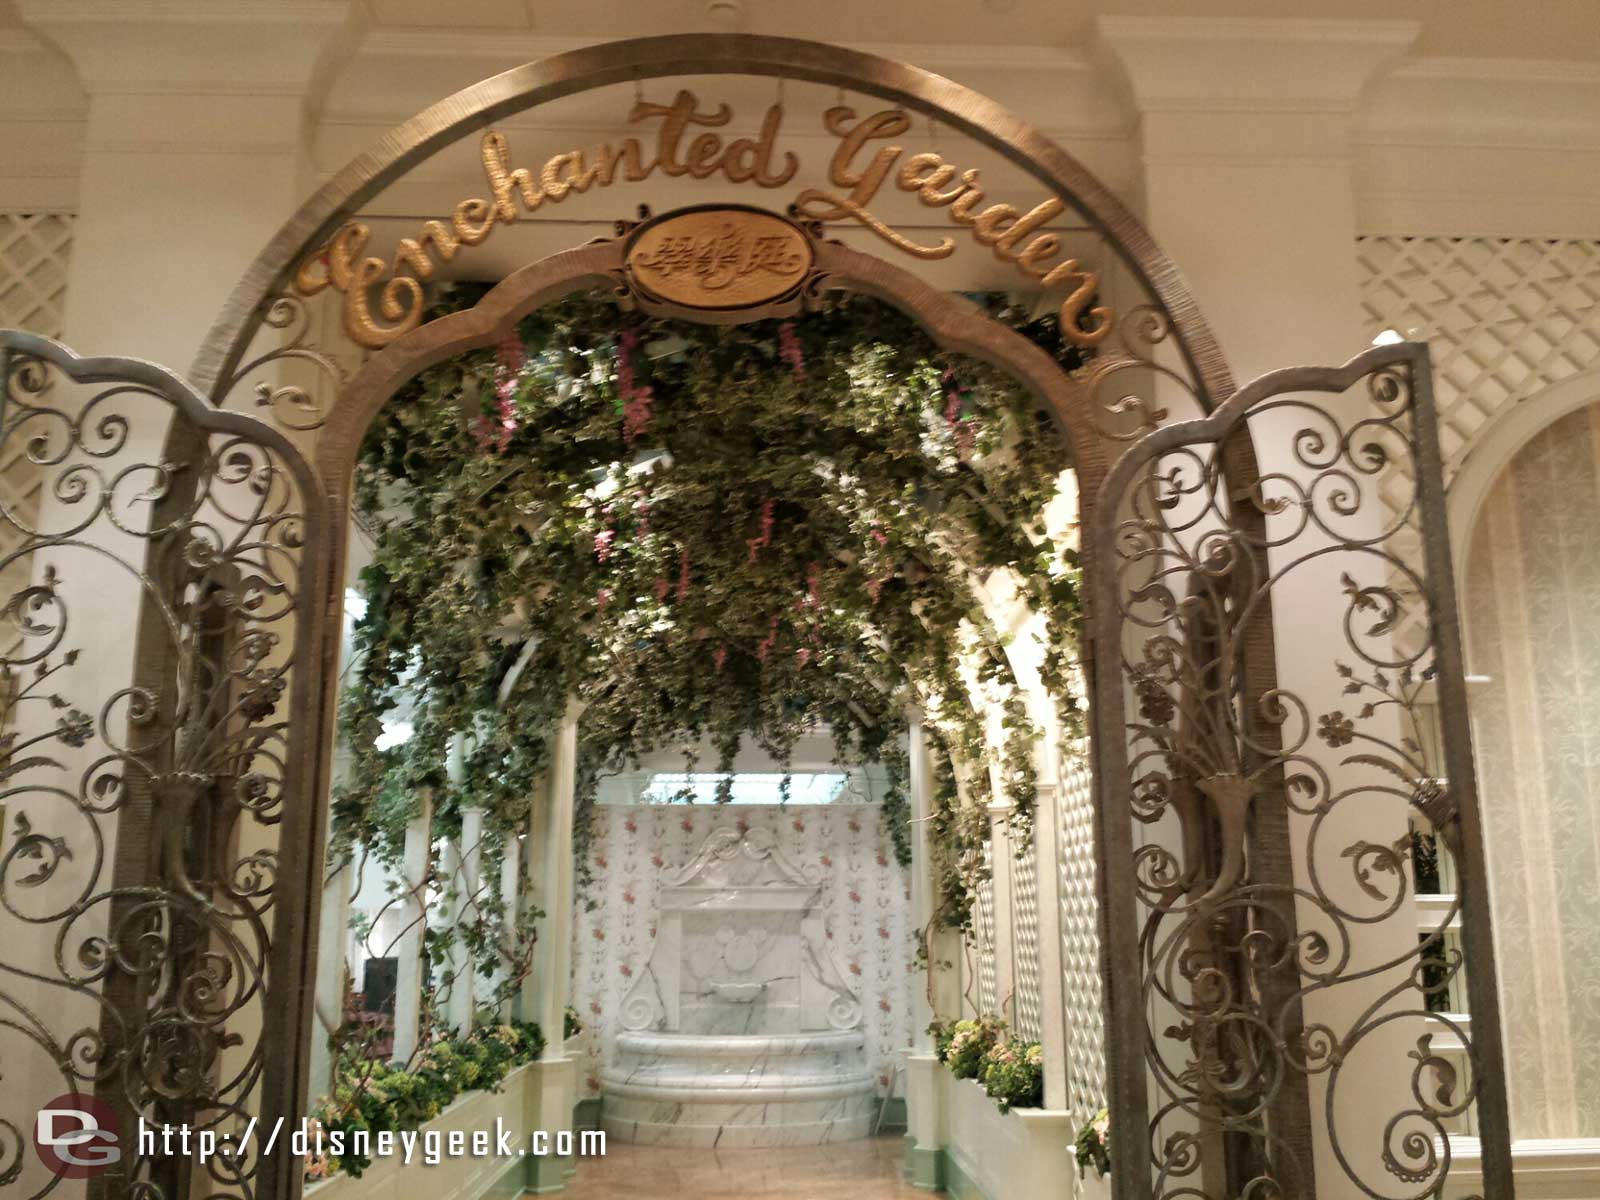 Enchanted Garden restaurant entrance #HongKongDisneyland Hotel #hkdl